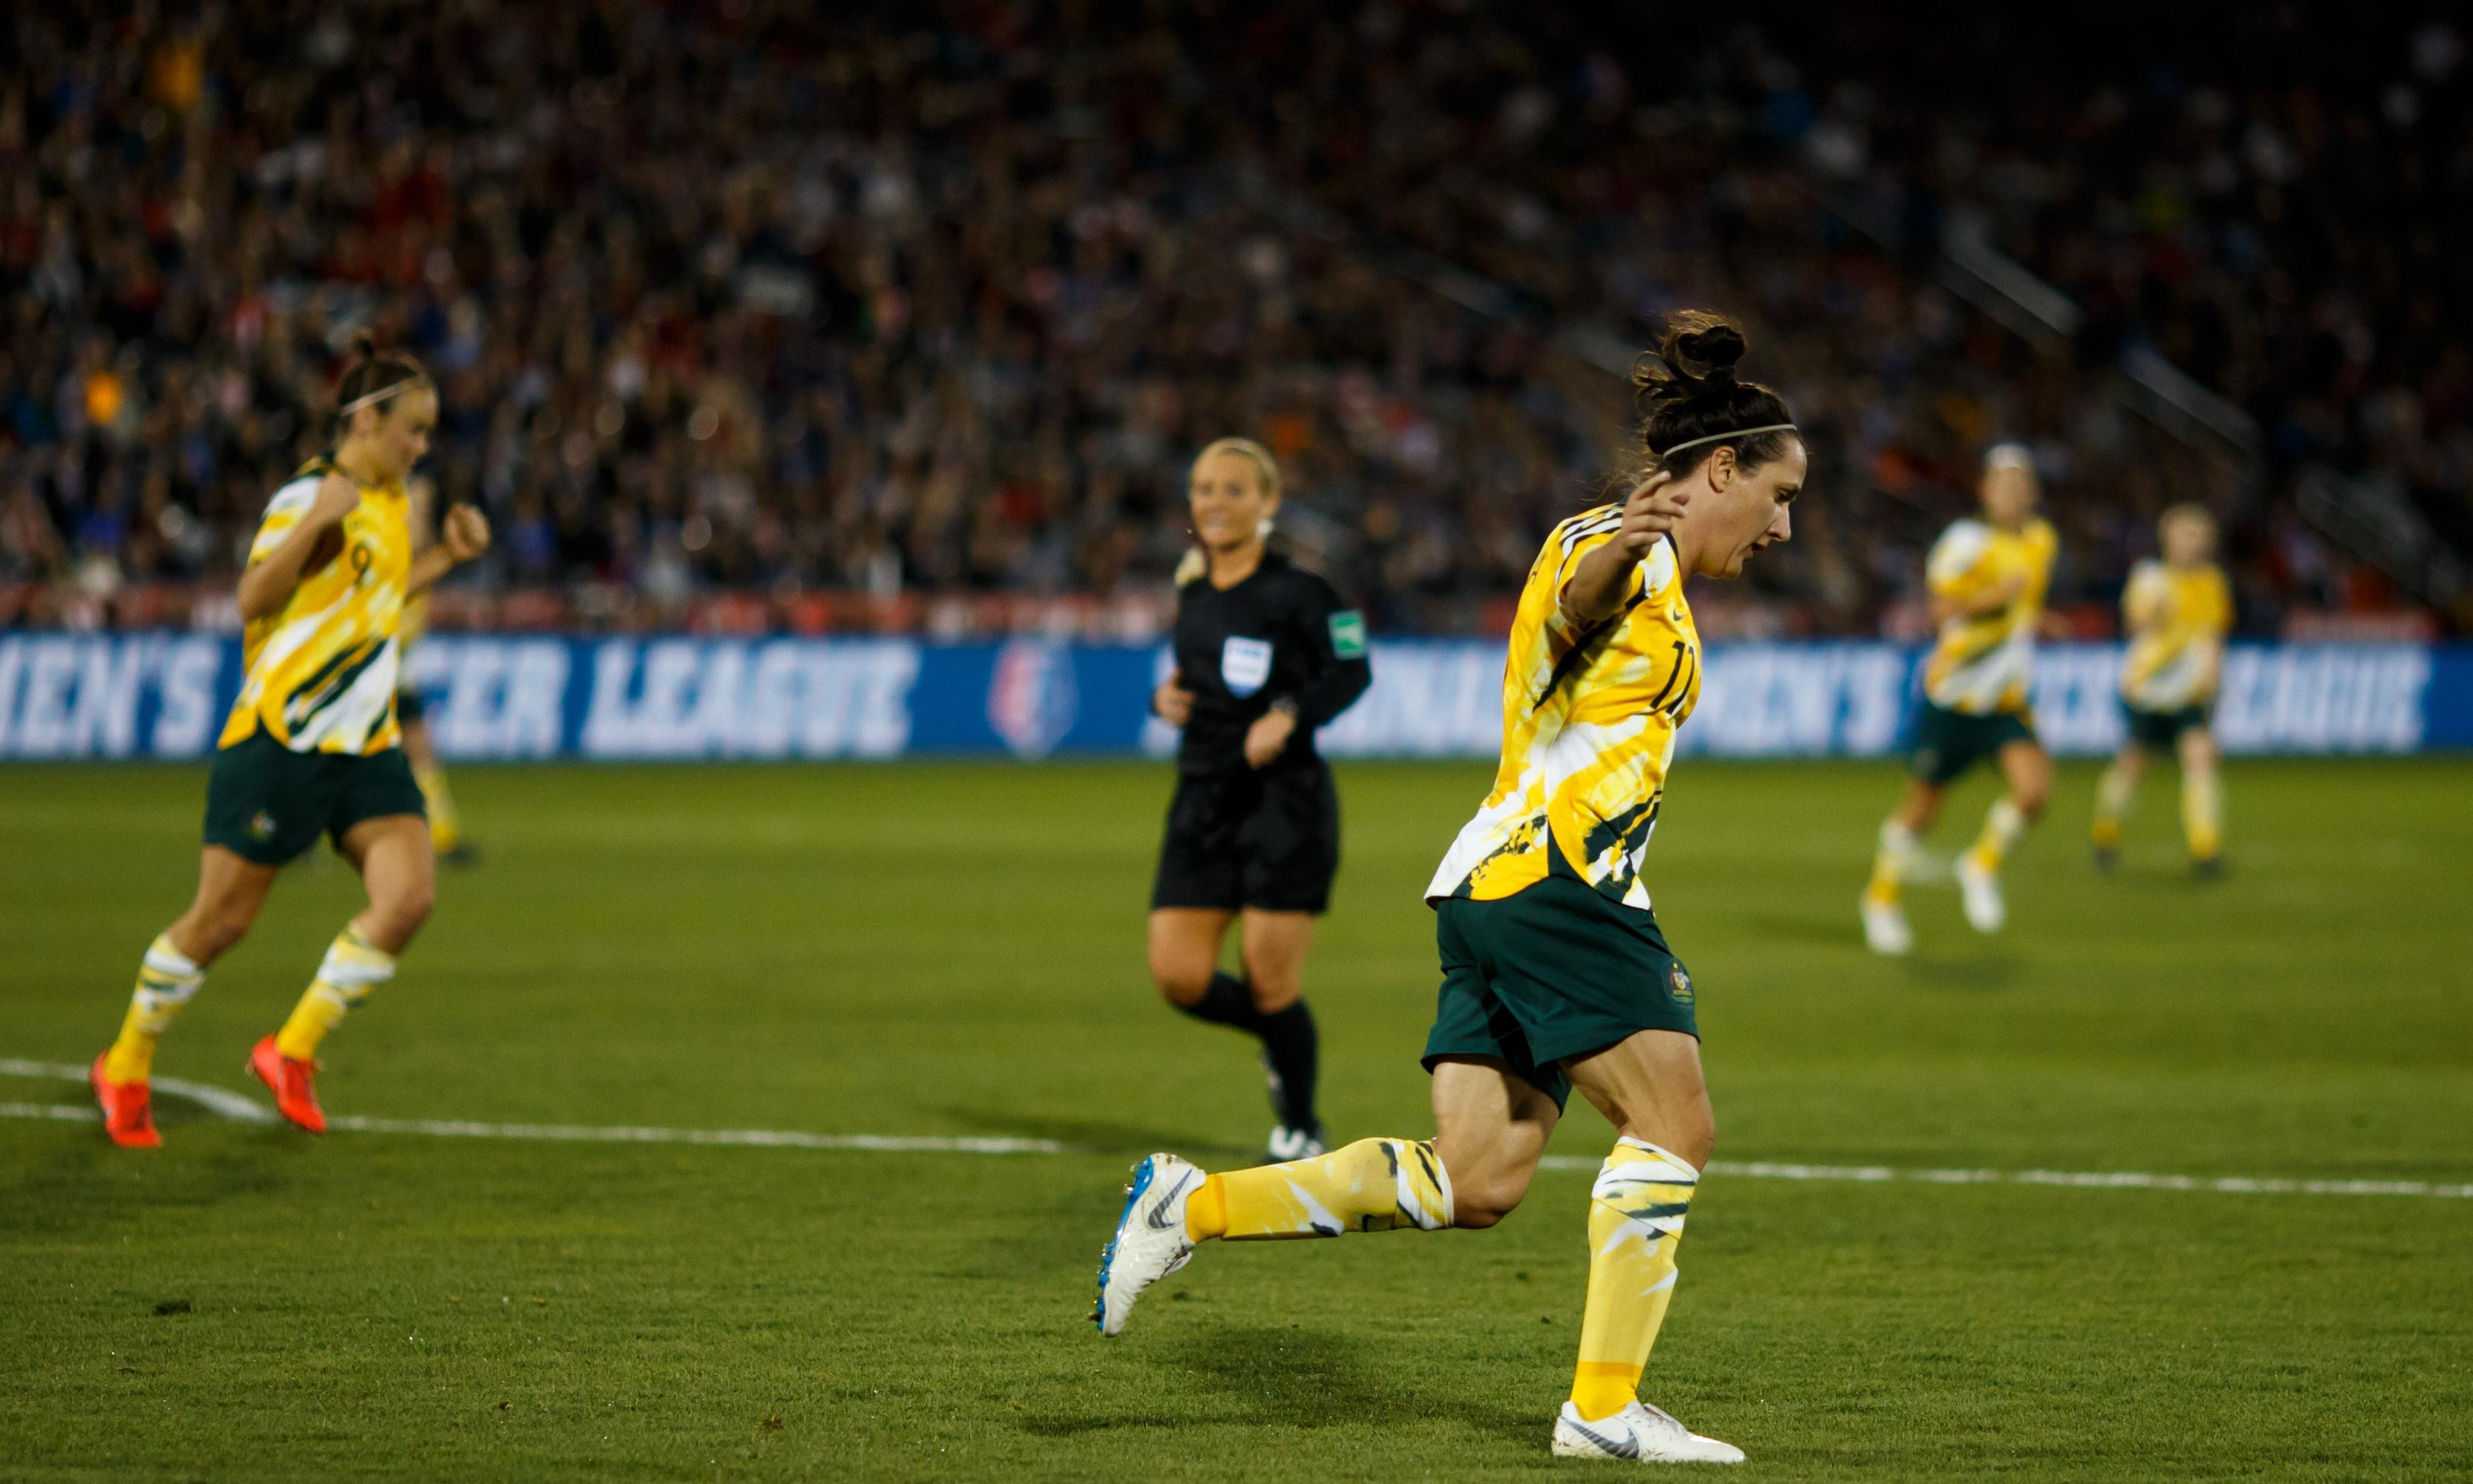 Matildas will be on the attack at Fifa World Cup